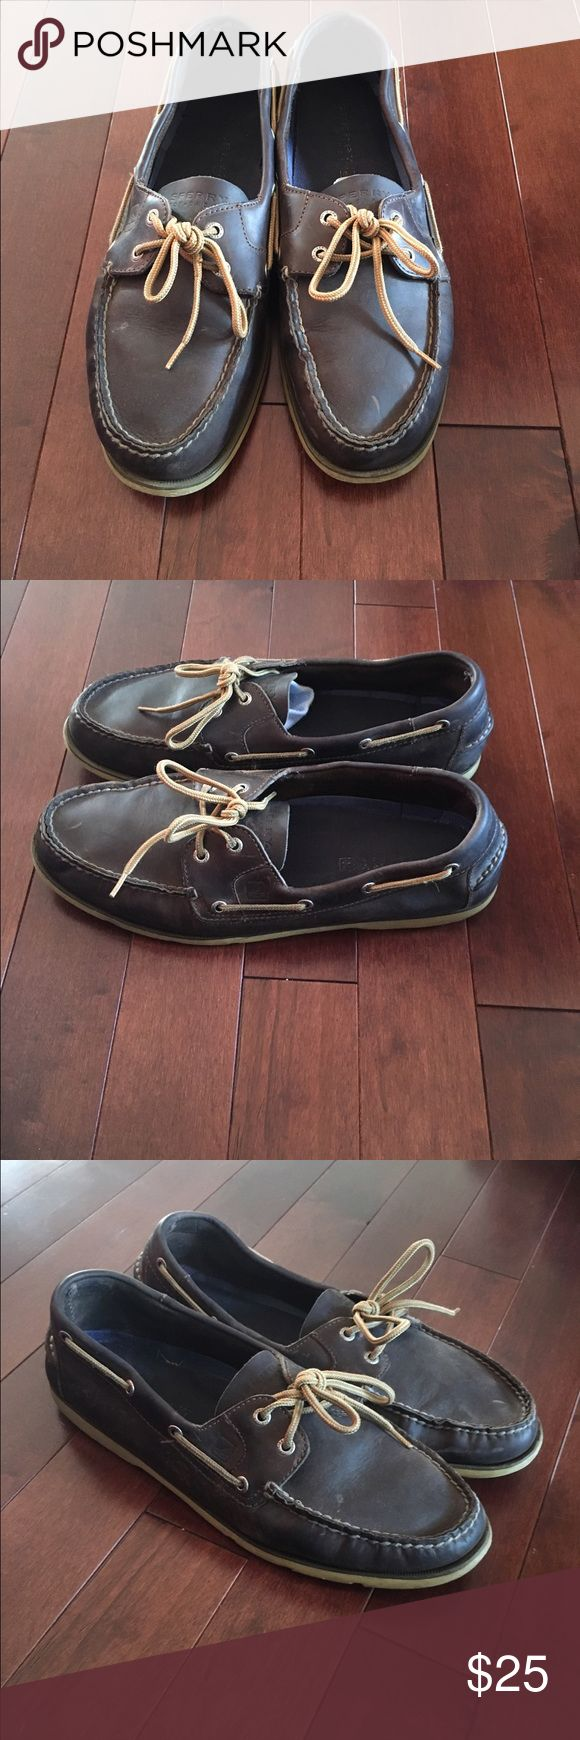 Sperry top sider ao 2 eye men's boat shoe size 13 Up for sale is a pair of sperry a/o 2 eye topsiders brown leather colorway. Size 13 have wear but still lots of life left and are comfortable in my opinion. 100% authentic and perfect for the price If any questions please feel free to ask Sperry Top-Sider Shoes Boat Shoes